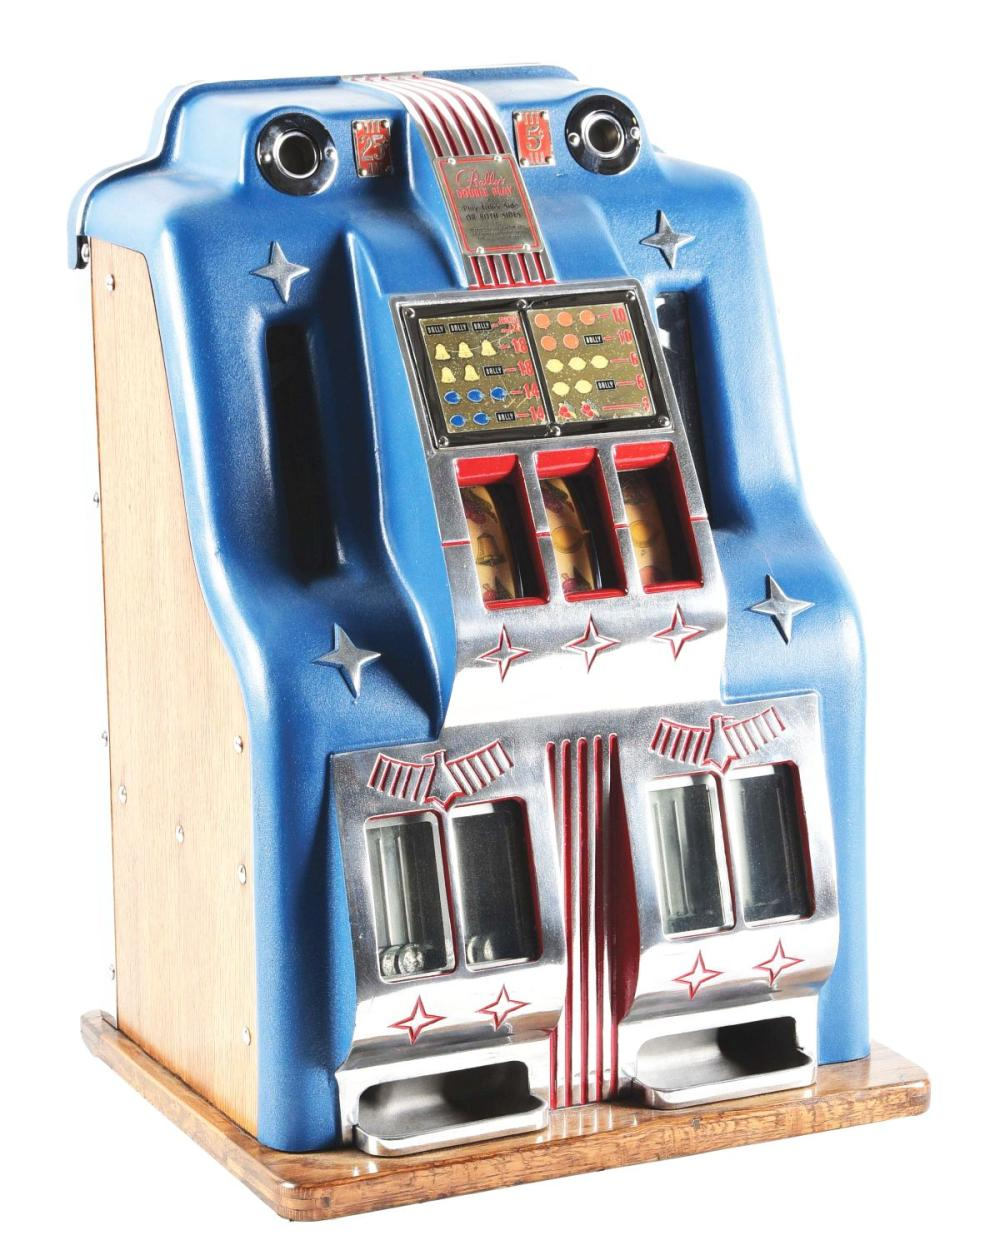 25¢ & 5¢ BALLYS DOUBLE BELL SLOT MACHINE.